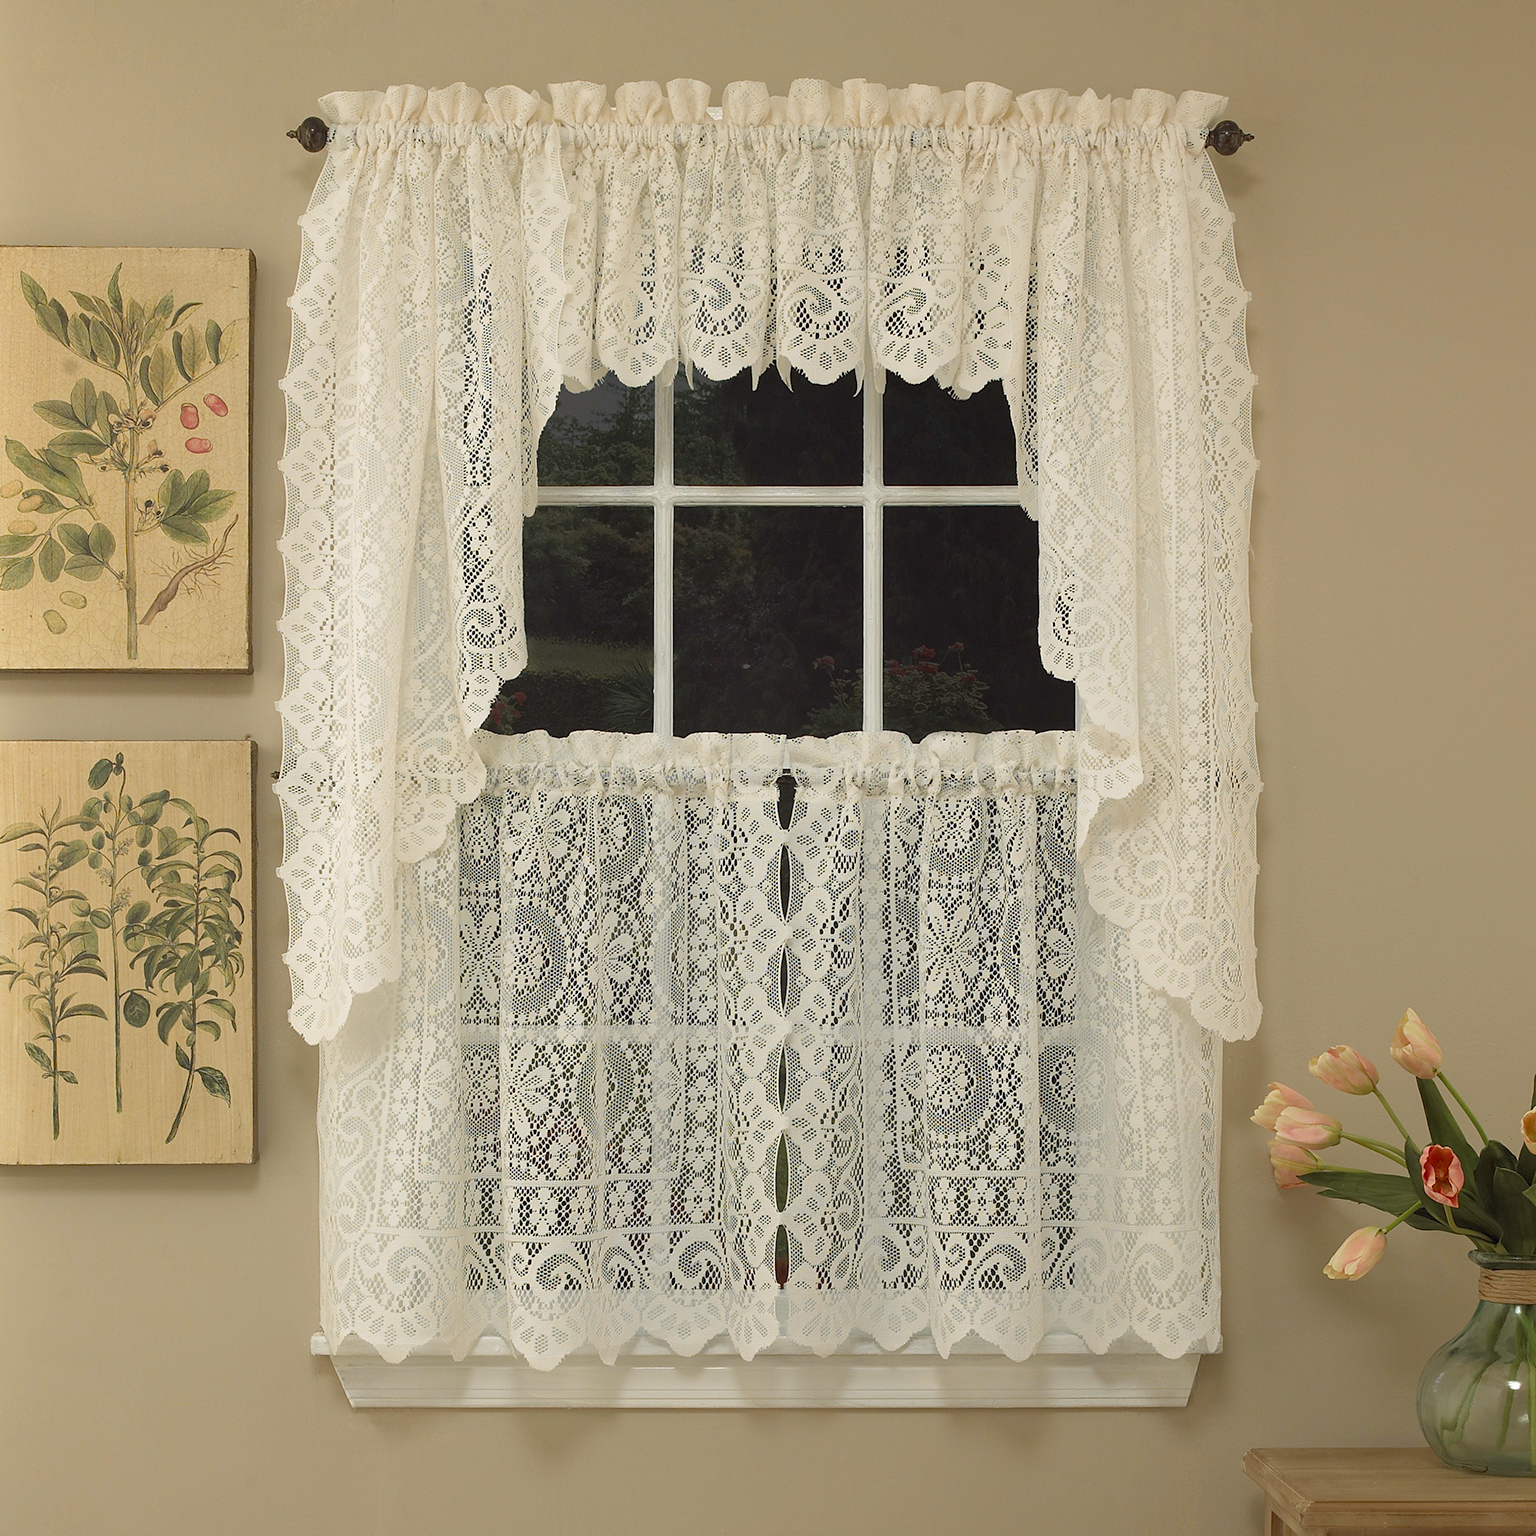 Elegant White Priscilla Lace Kitchen Curtain Pieces Regarding Newest Details About Hopewell Heavy Cream Lace Kitchen Curtain Choice Of Tier Valance Or Swag (View 14 of 20)